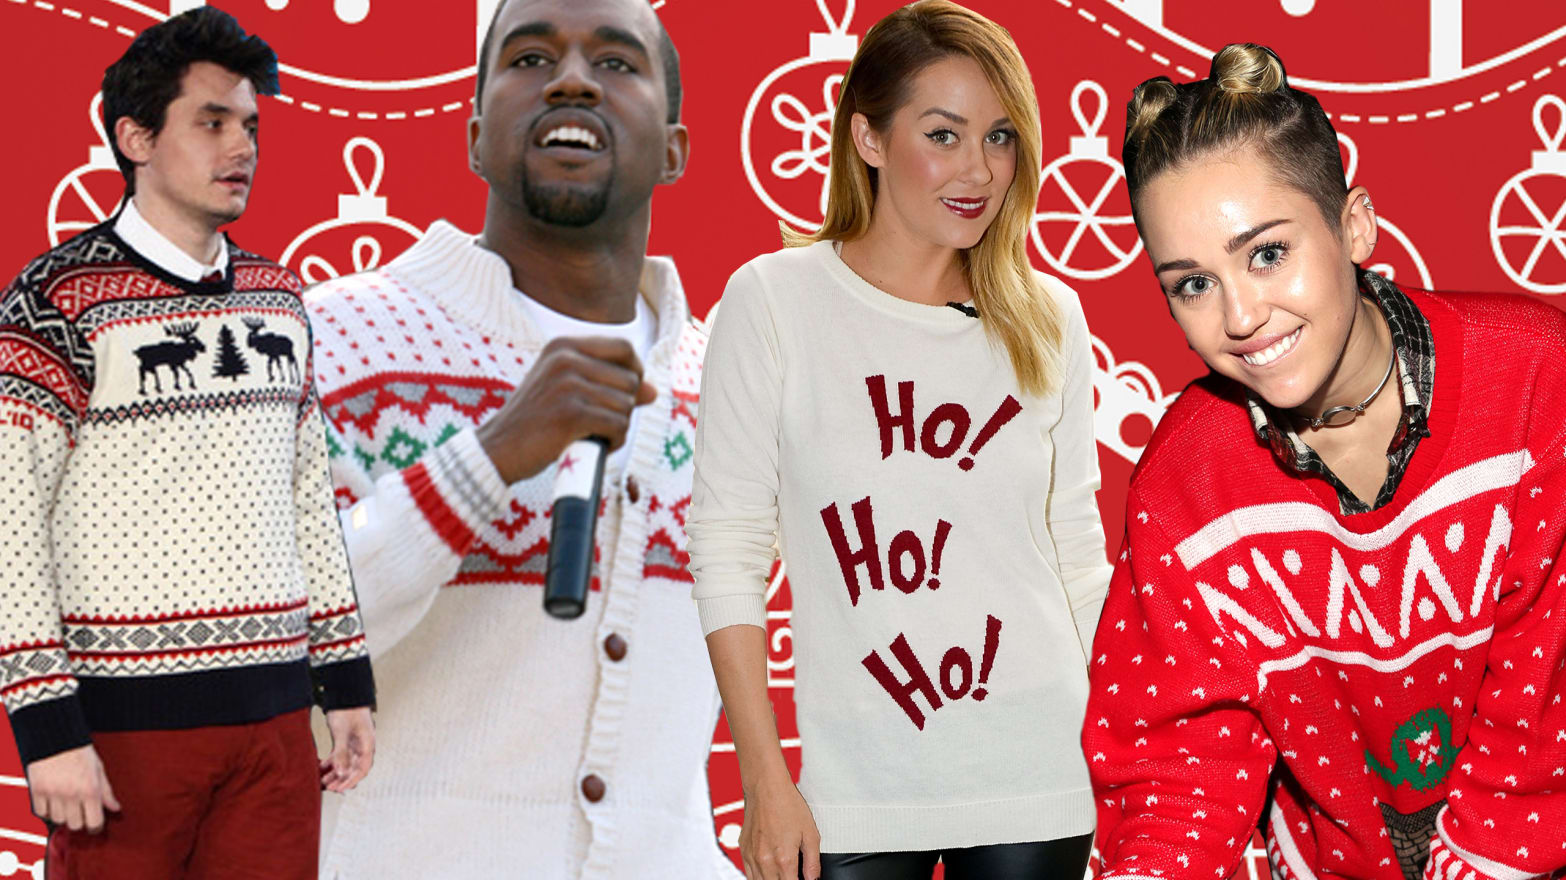 Horrible Christmas Sweaters.Miley Cyrus And Other Celebrities In Ugly Christmas Sweaters